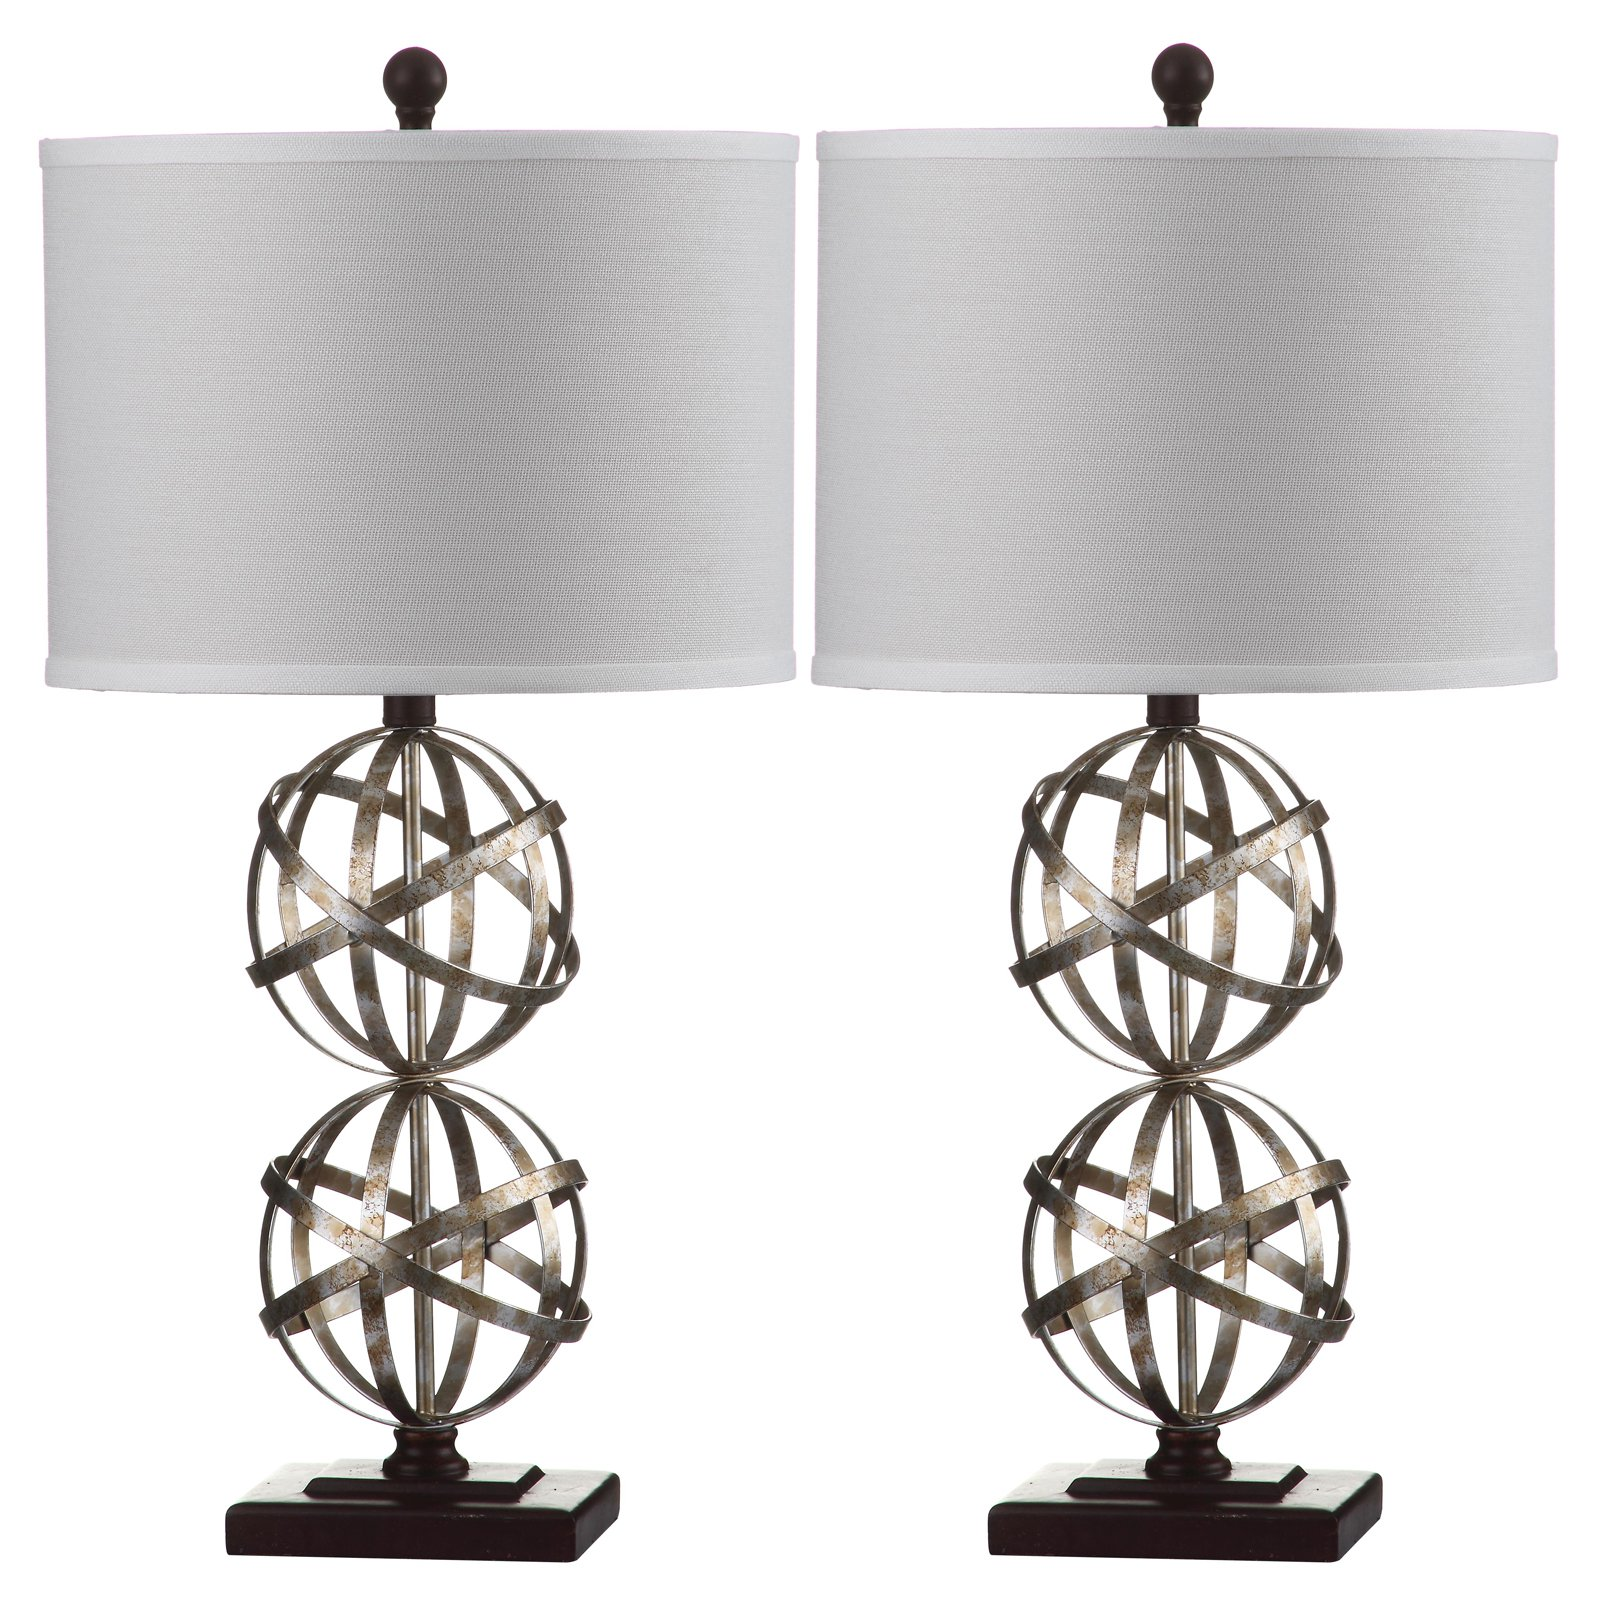 Safavieh Haley Double Sphere Table Lamp with CFL Bulb, Antique Silver with Off-White Shade, Set of 2